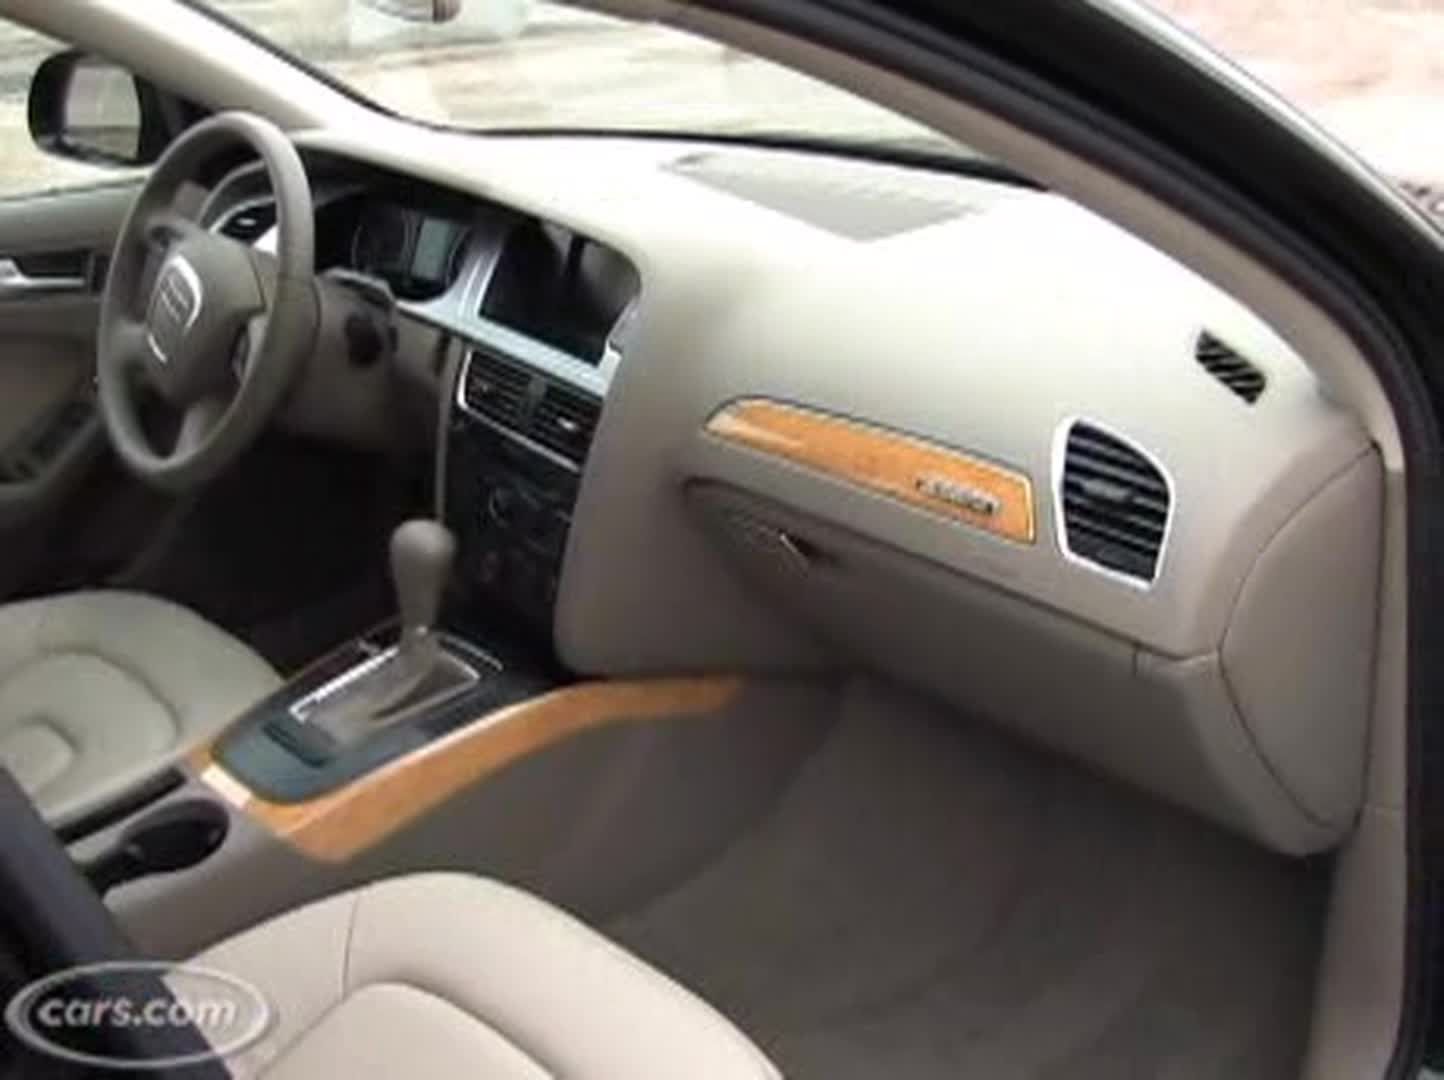 2009 Audi A4 - For every turn, there's cars com